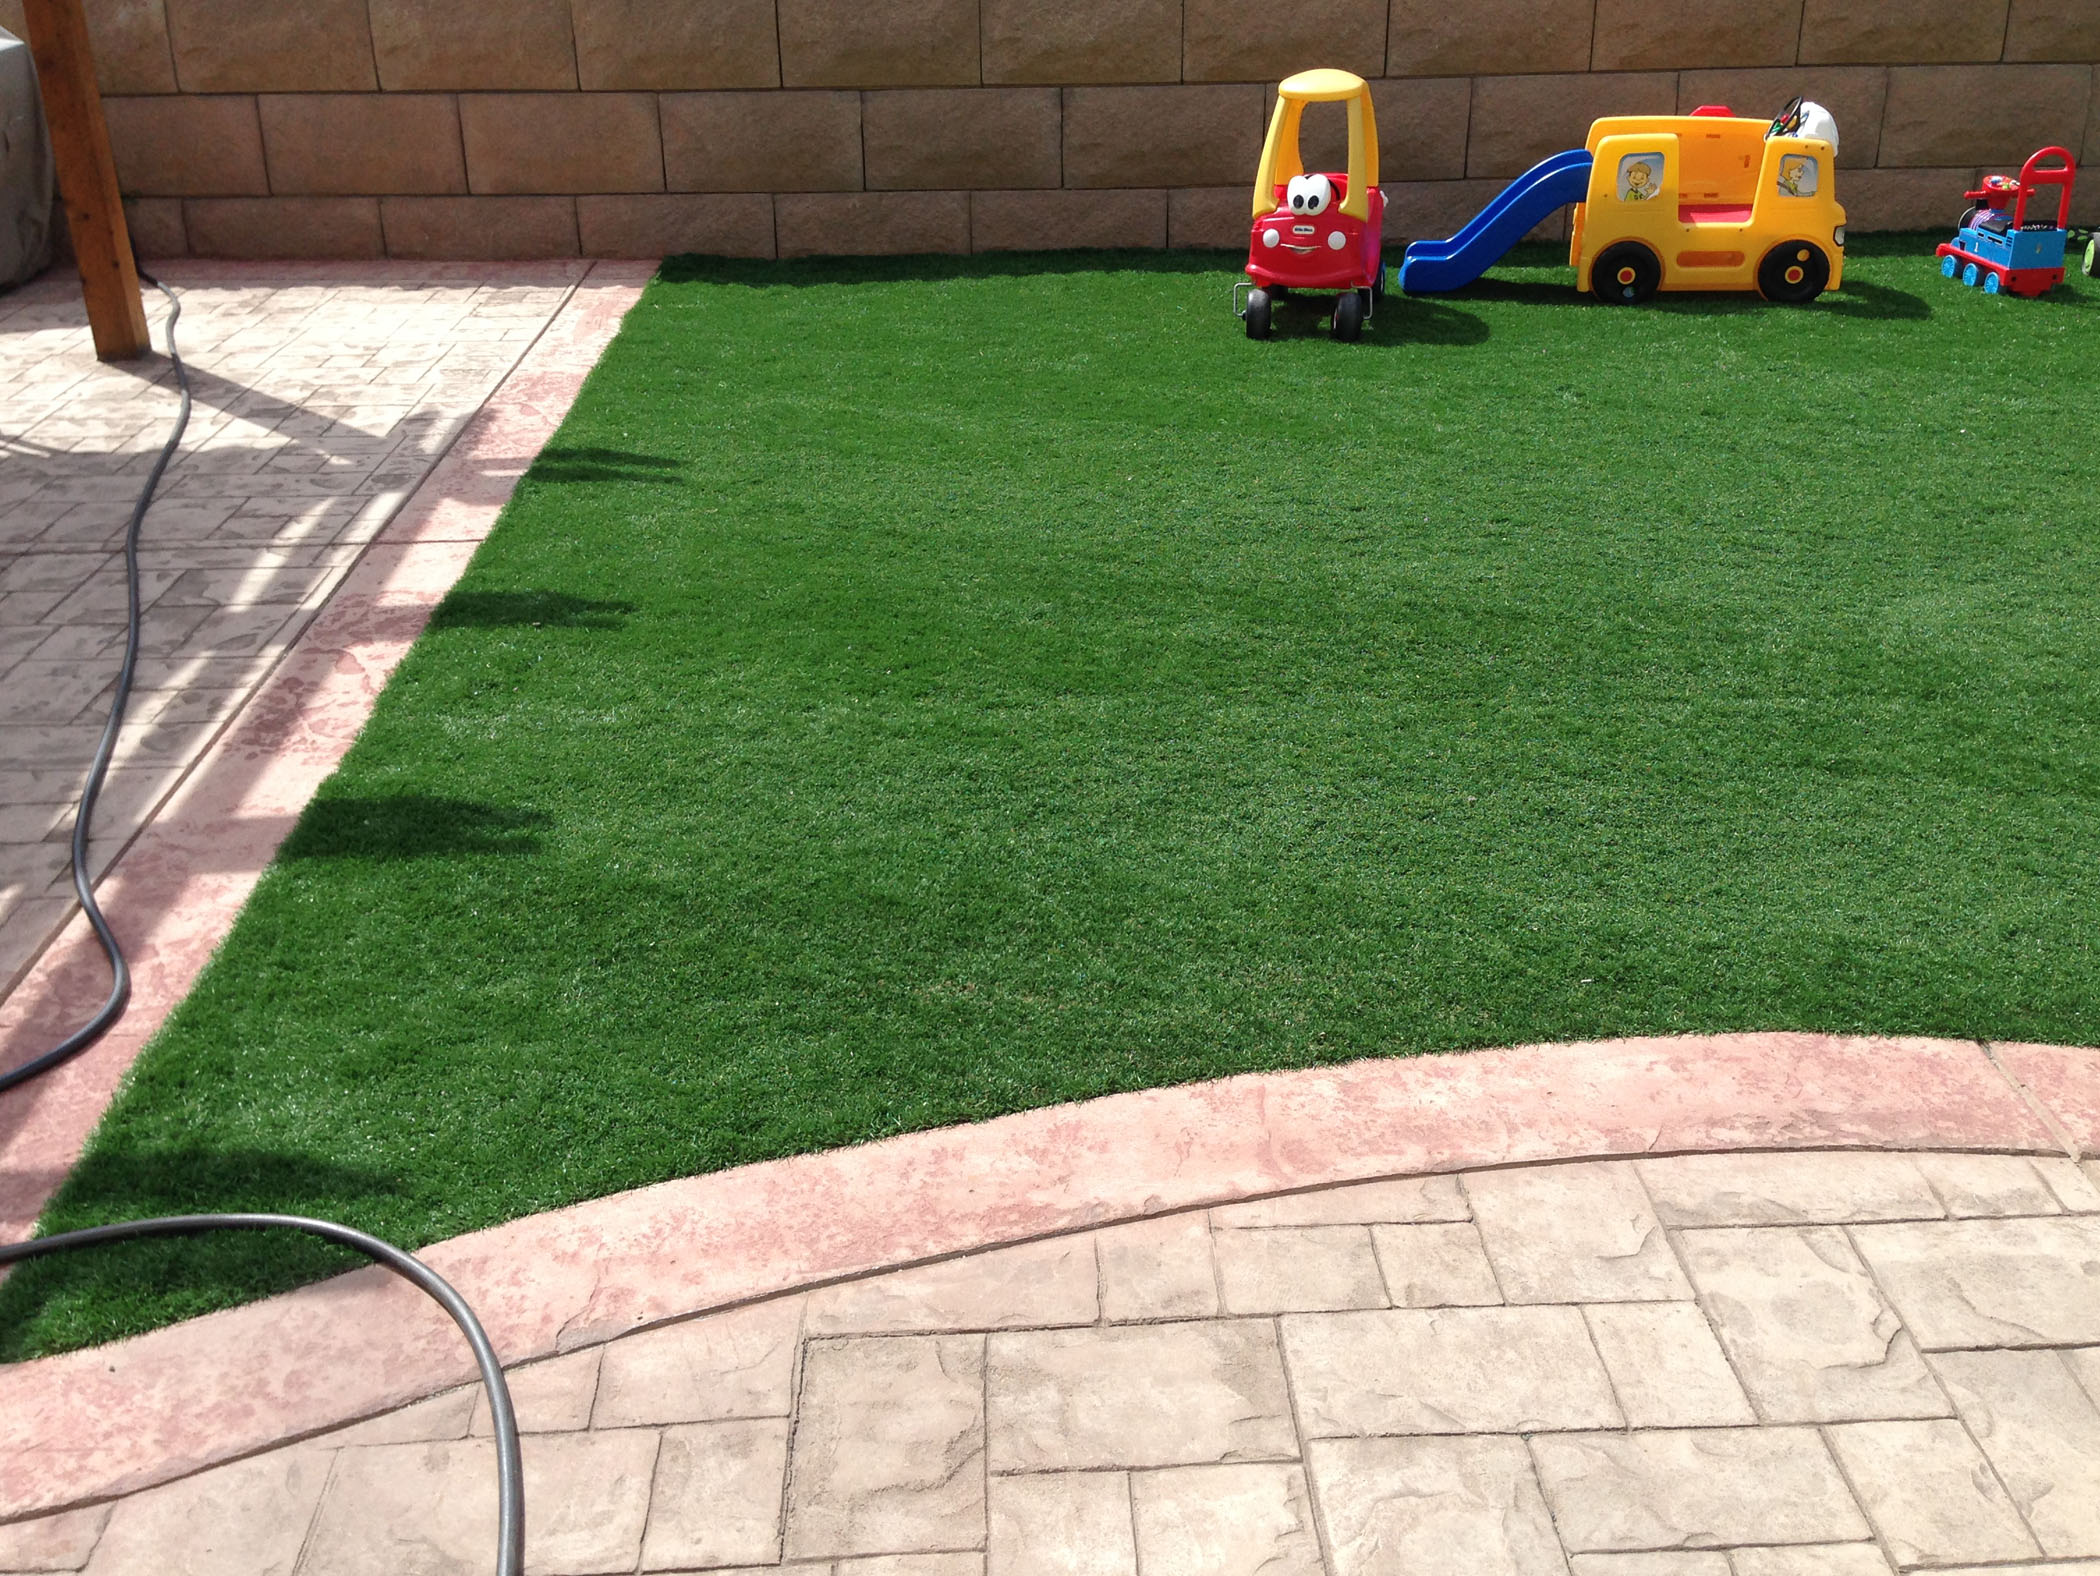 Fake Grass For Yard | Artificial Turf Perris California on Artificial Turf Backyard Ideas id=64292